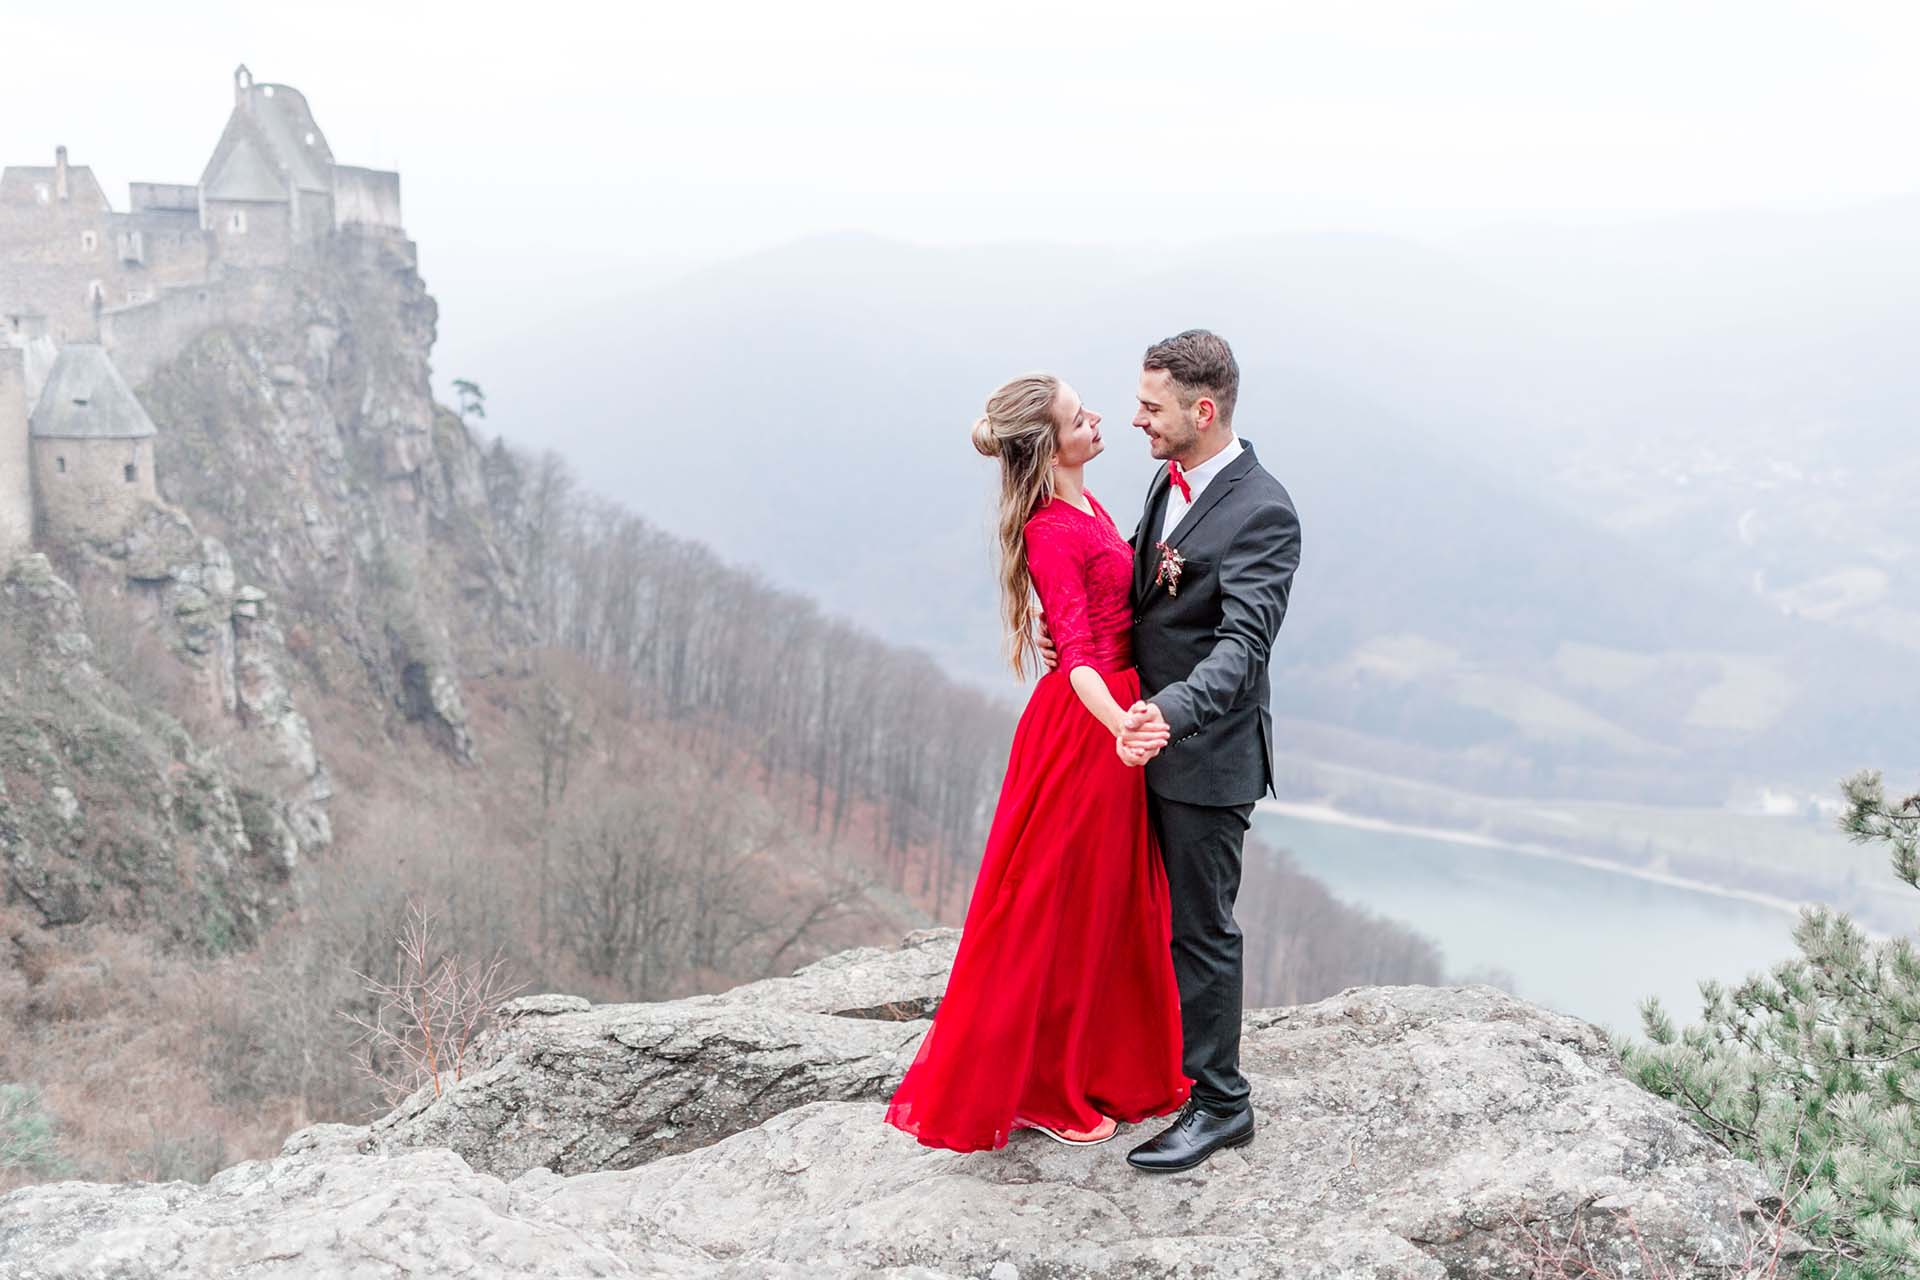 Elopement im Winter Burg Aggstein